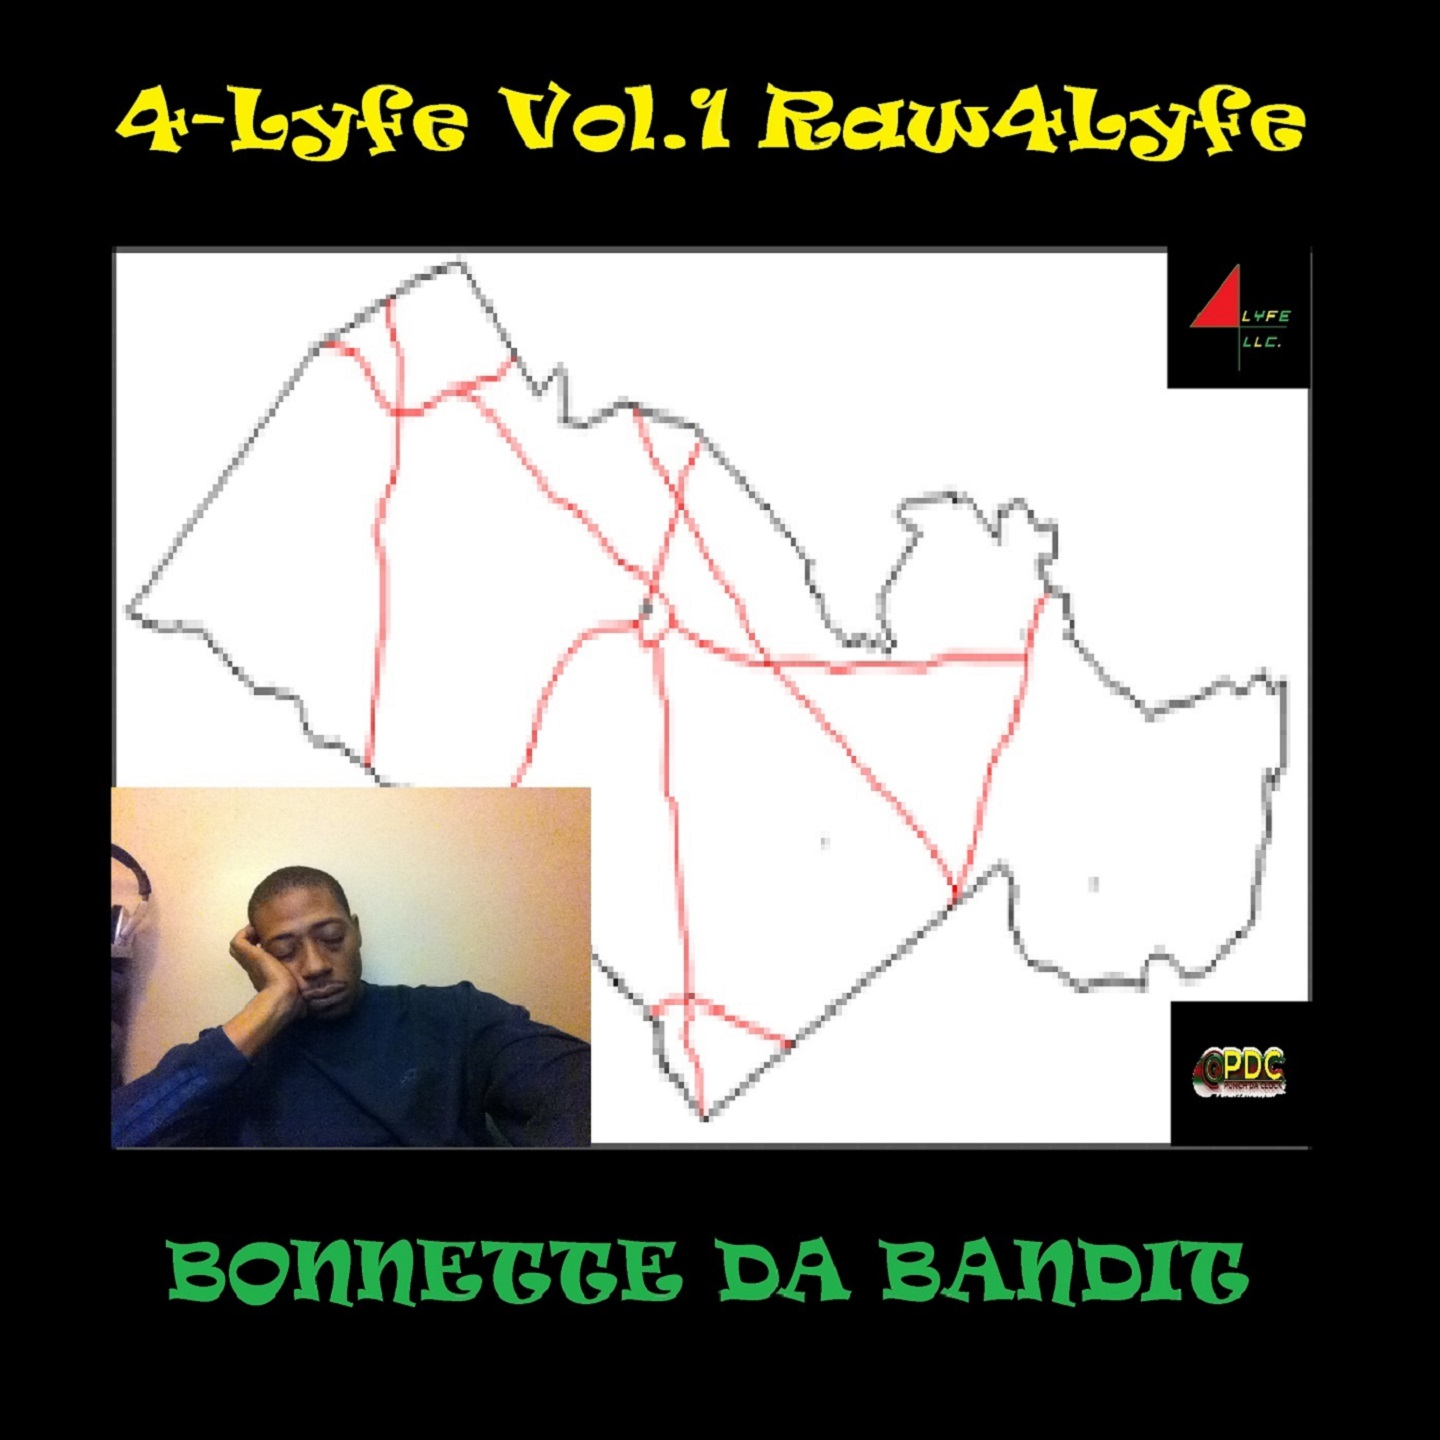 4 Lyfe, Vol. 1: Raw 4 Lyfe by Bonnette da Bandit